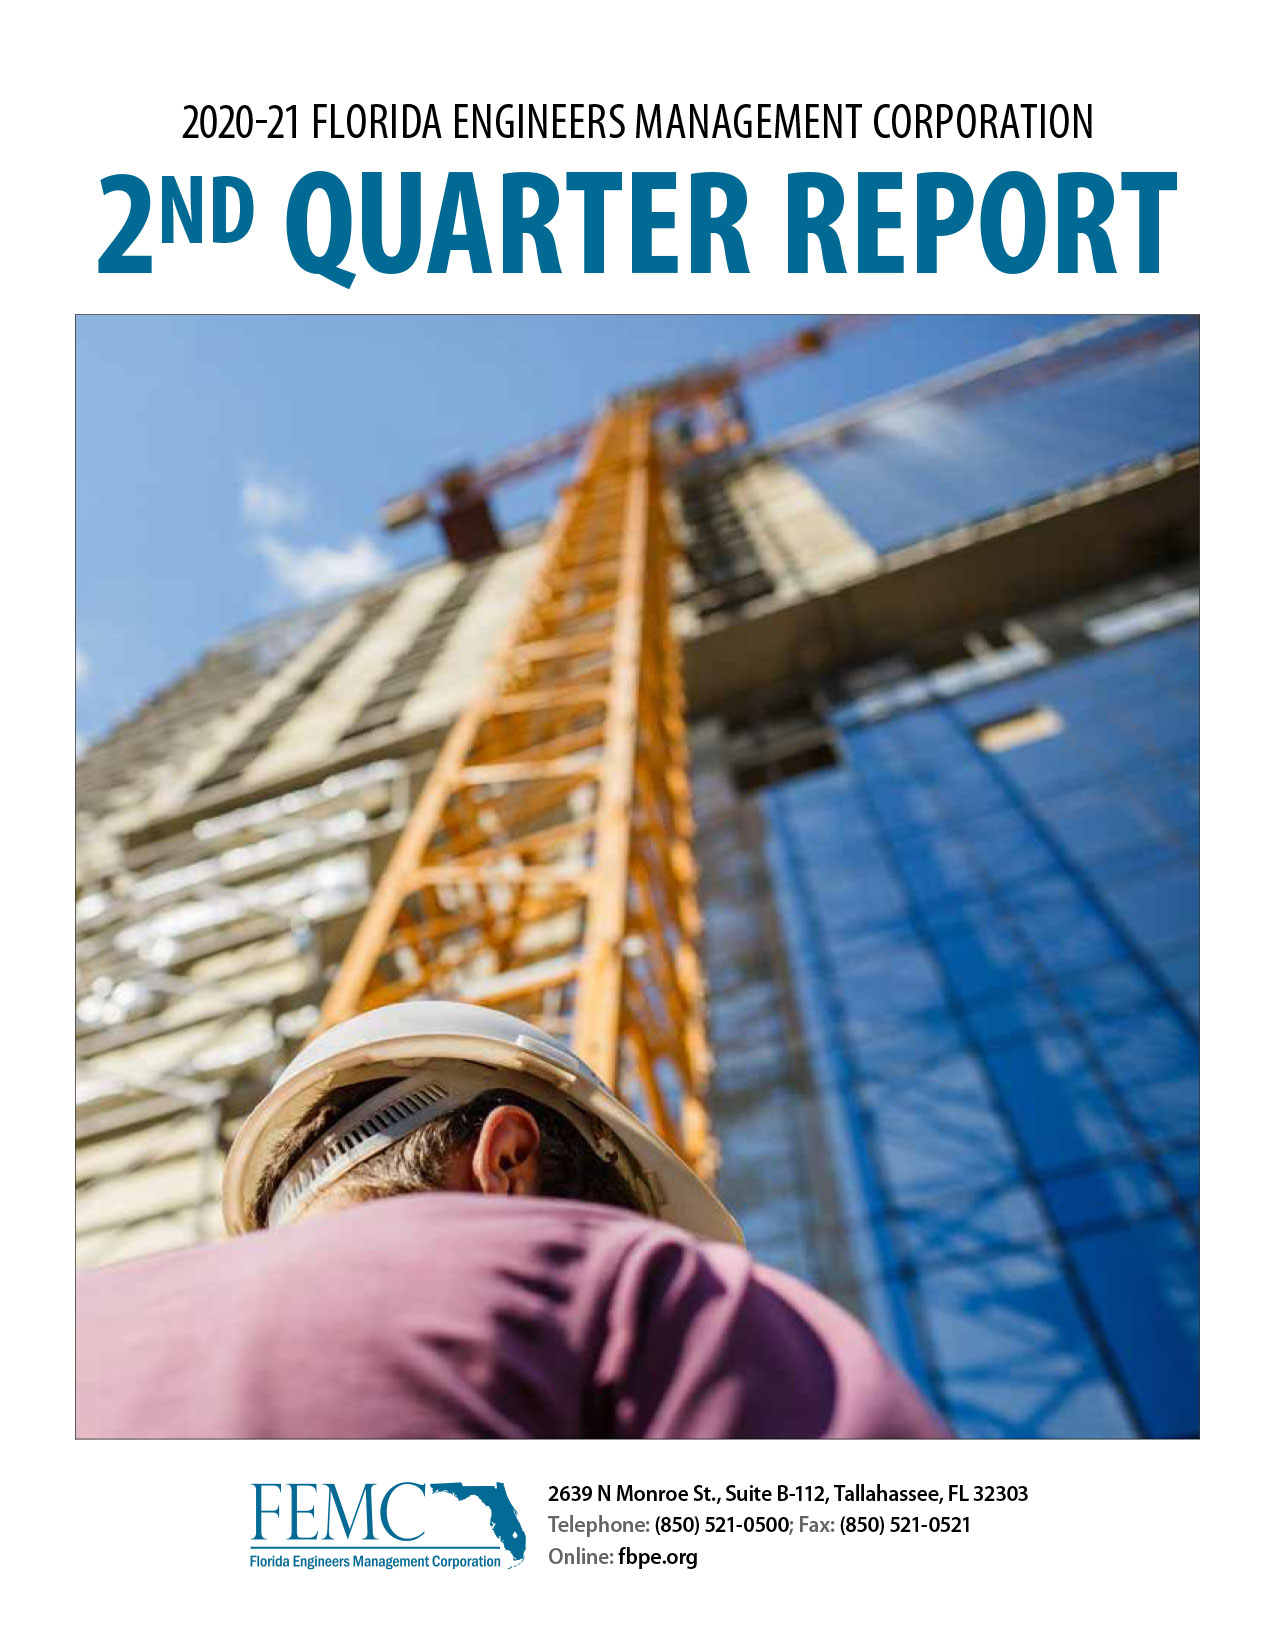 Cover of the 2020-21 Florida Engineers Management Corporation 2nd Quarter Report